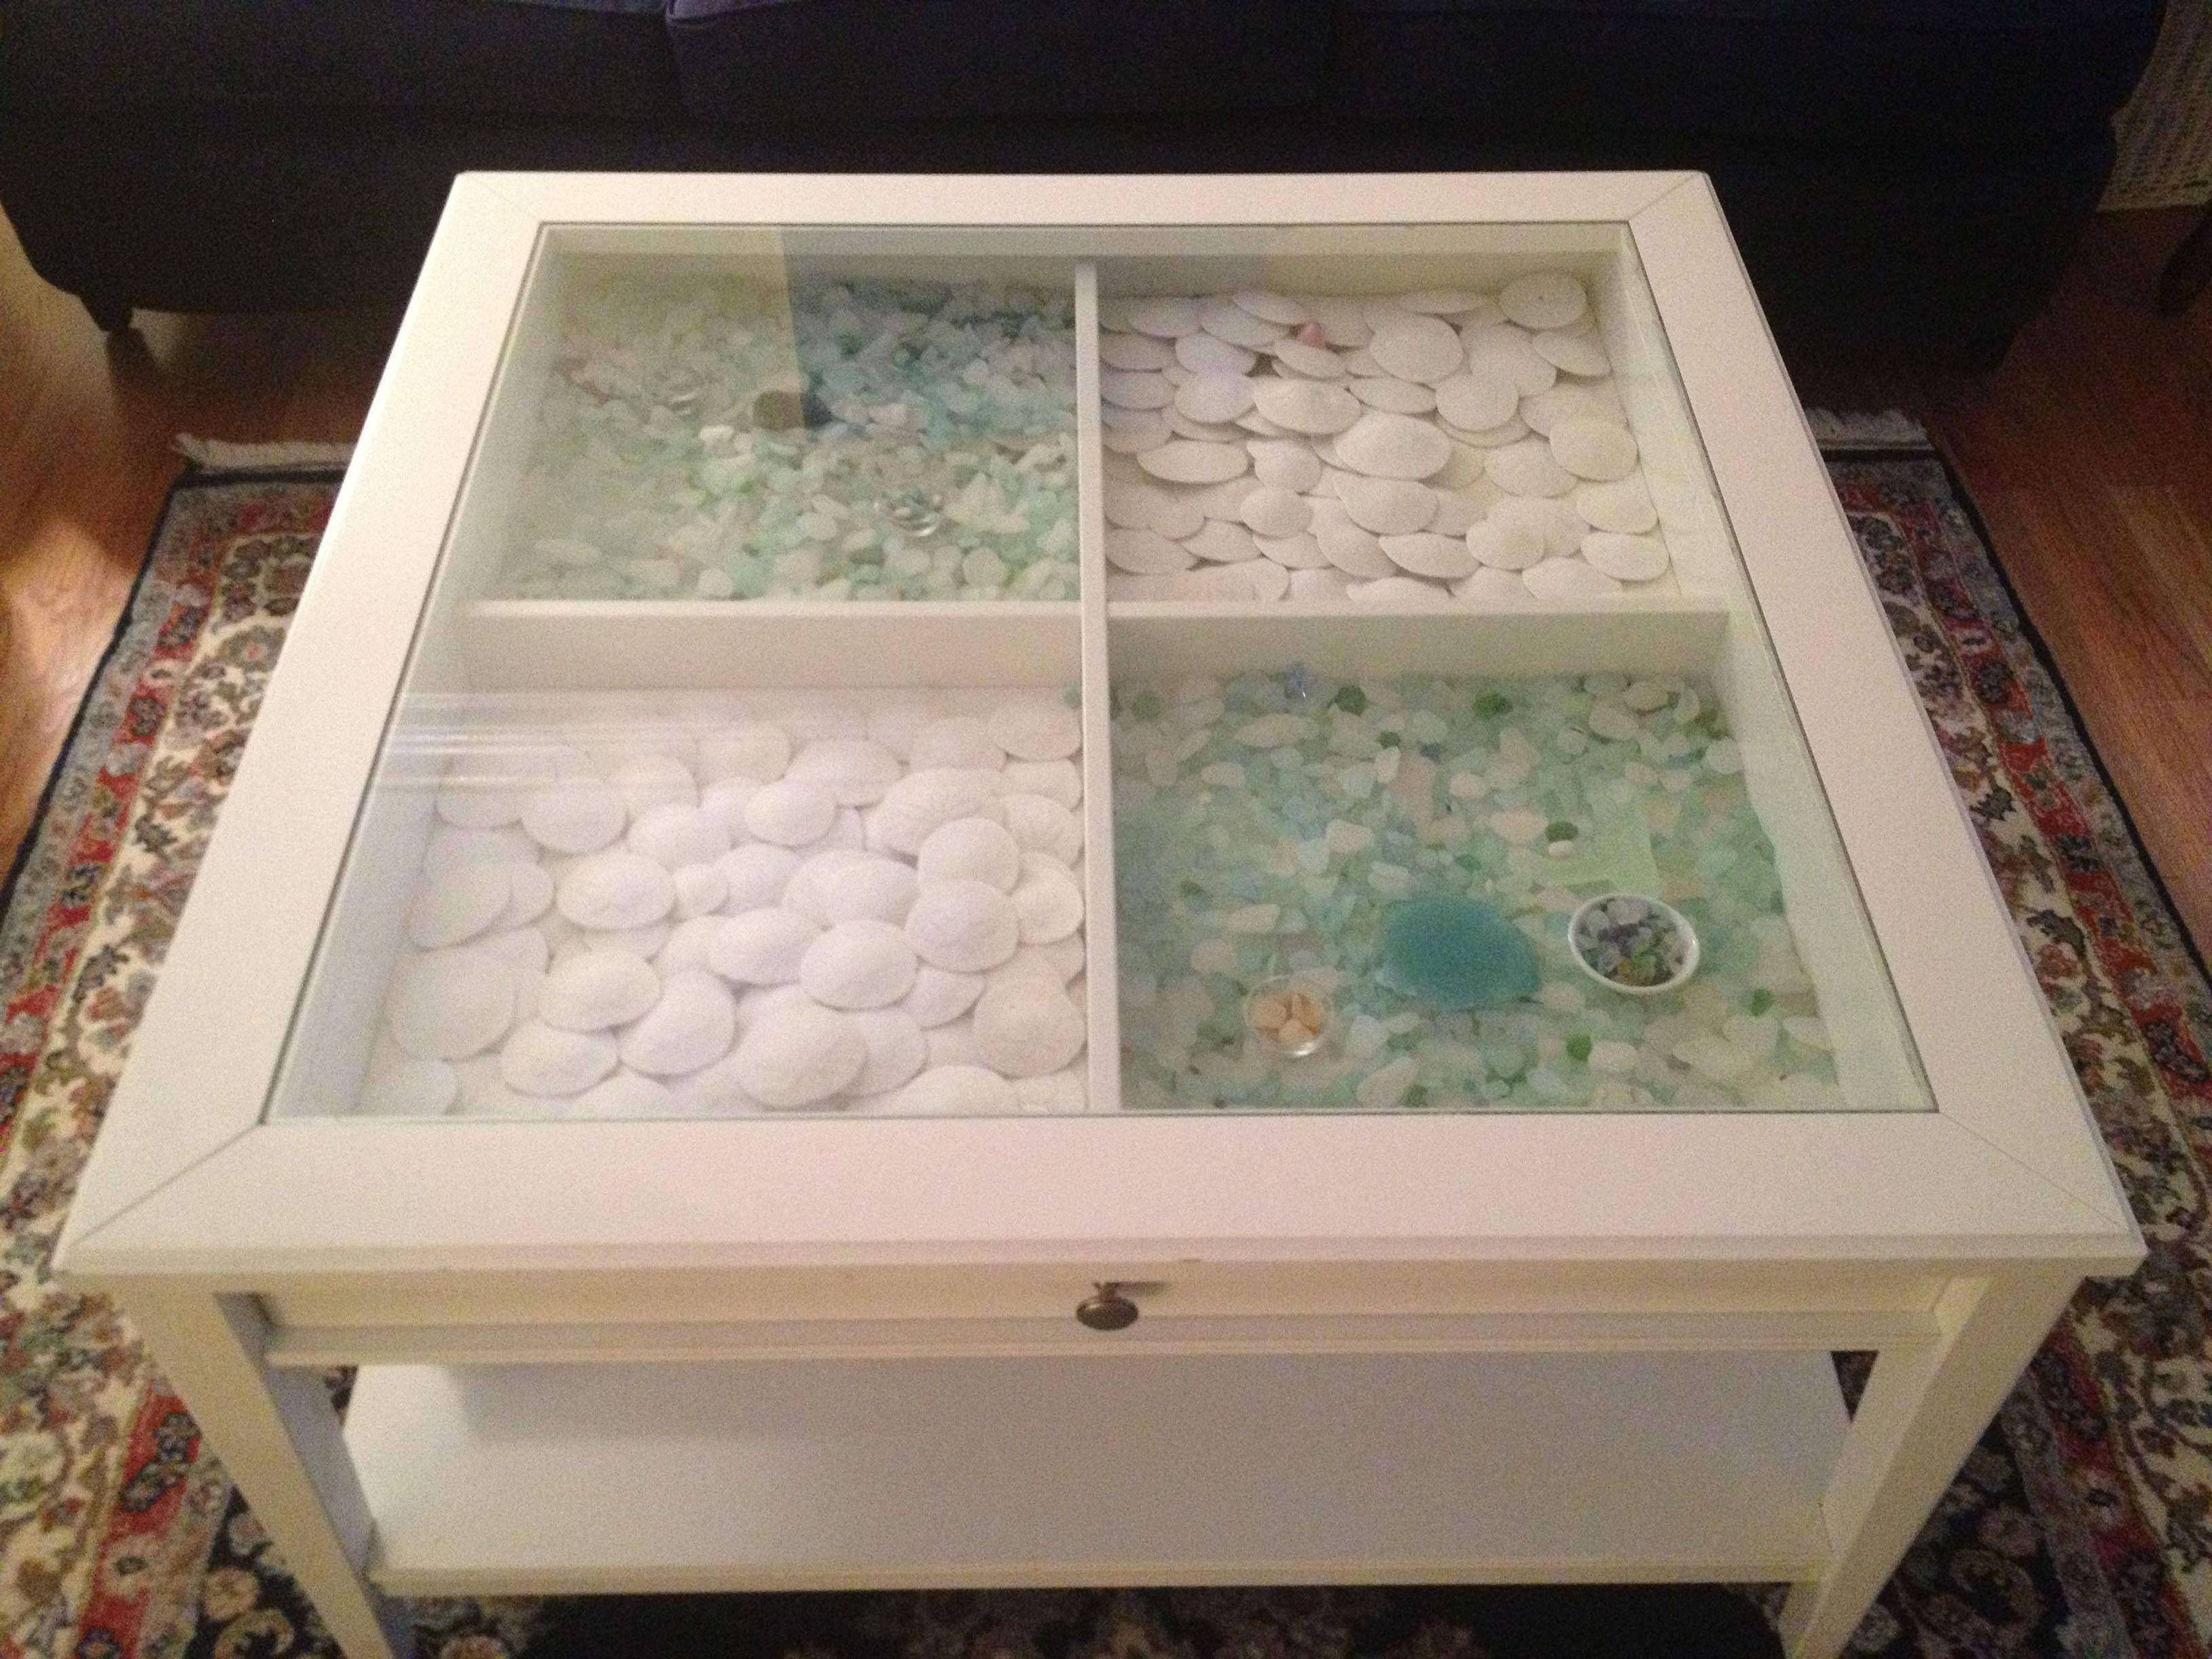 Simple Glass Top Display Coffee Table With Drawers pertaining to Coffee Tables With Glass Top Display Drawer (Image 28 of 30)